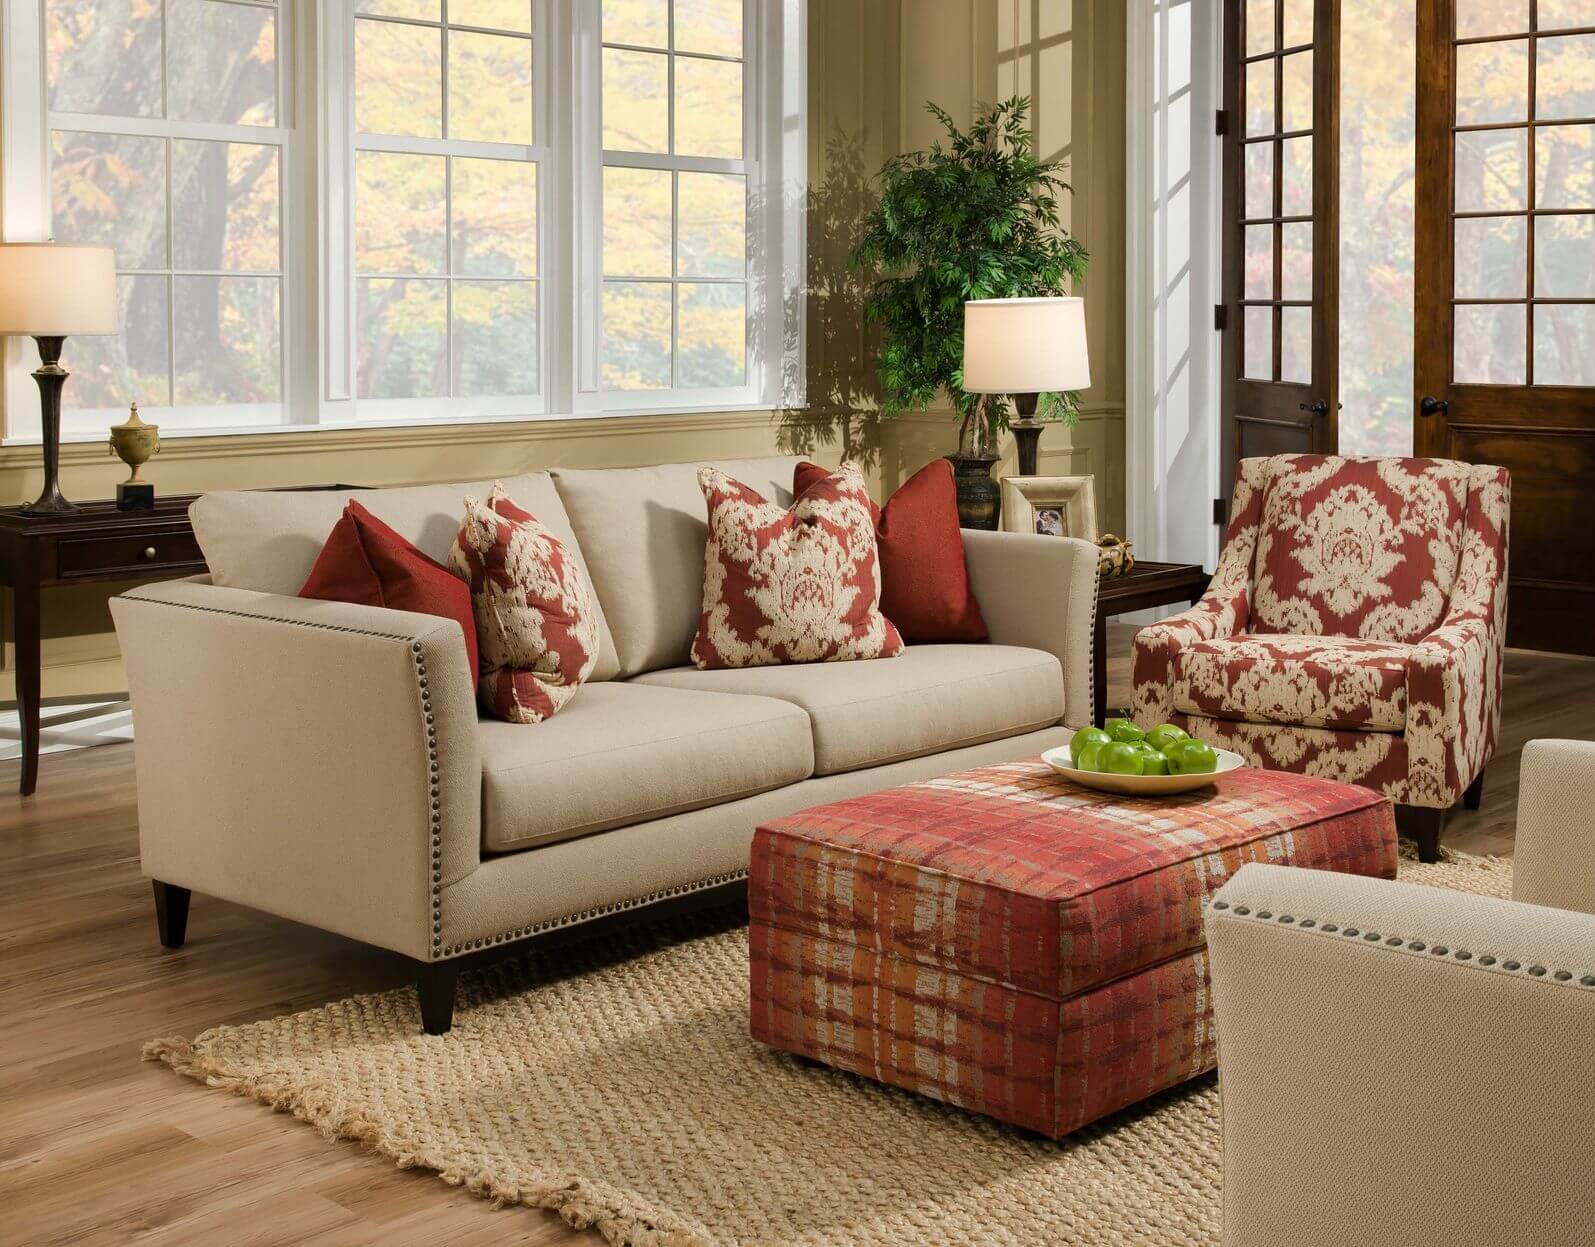 Point of your living room as well as complete the main seats such as sofa or couch these chairs with ottomans can be also applied as nice decorations